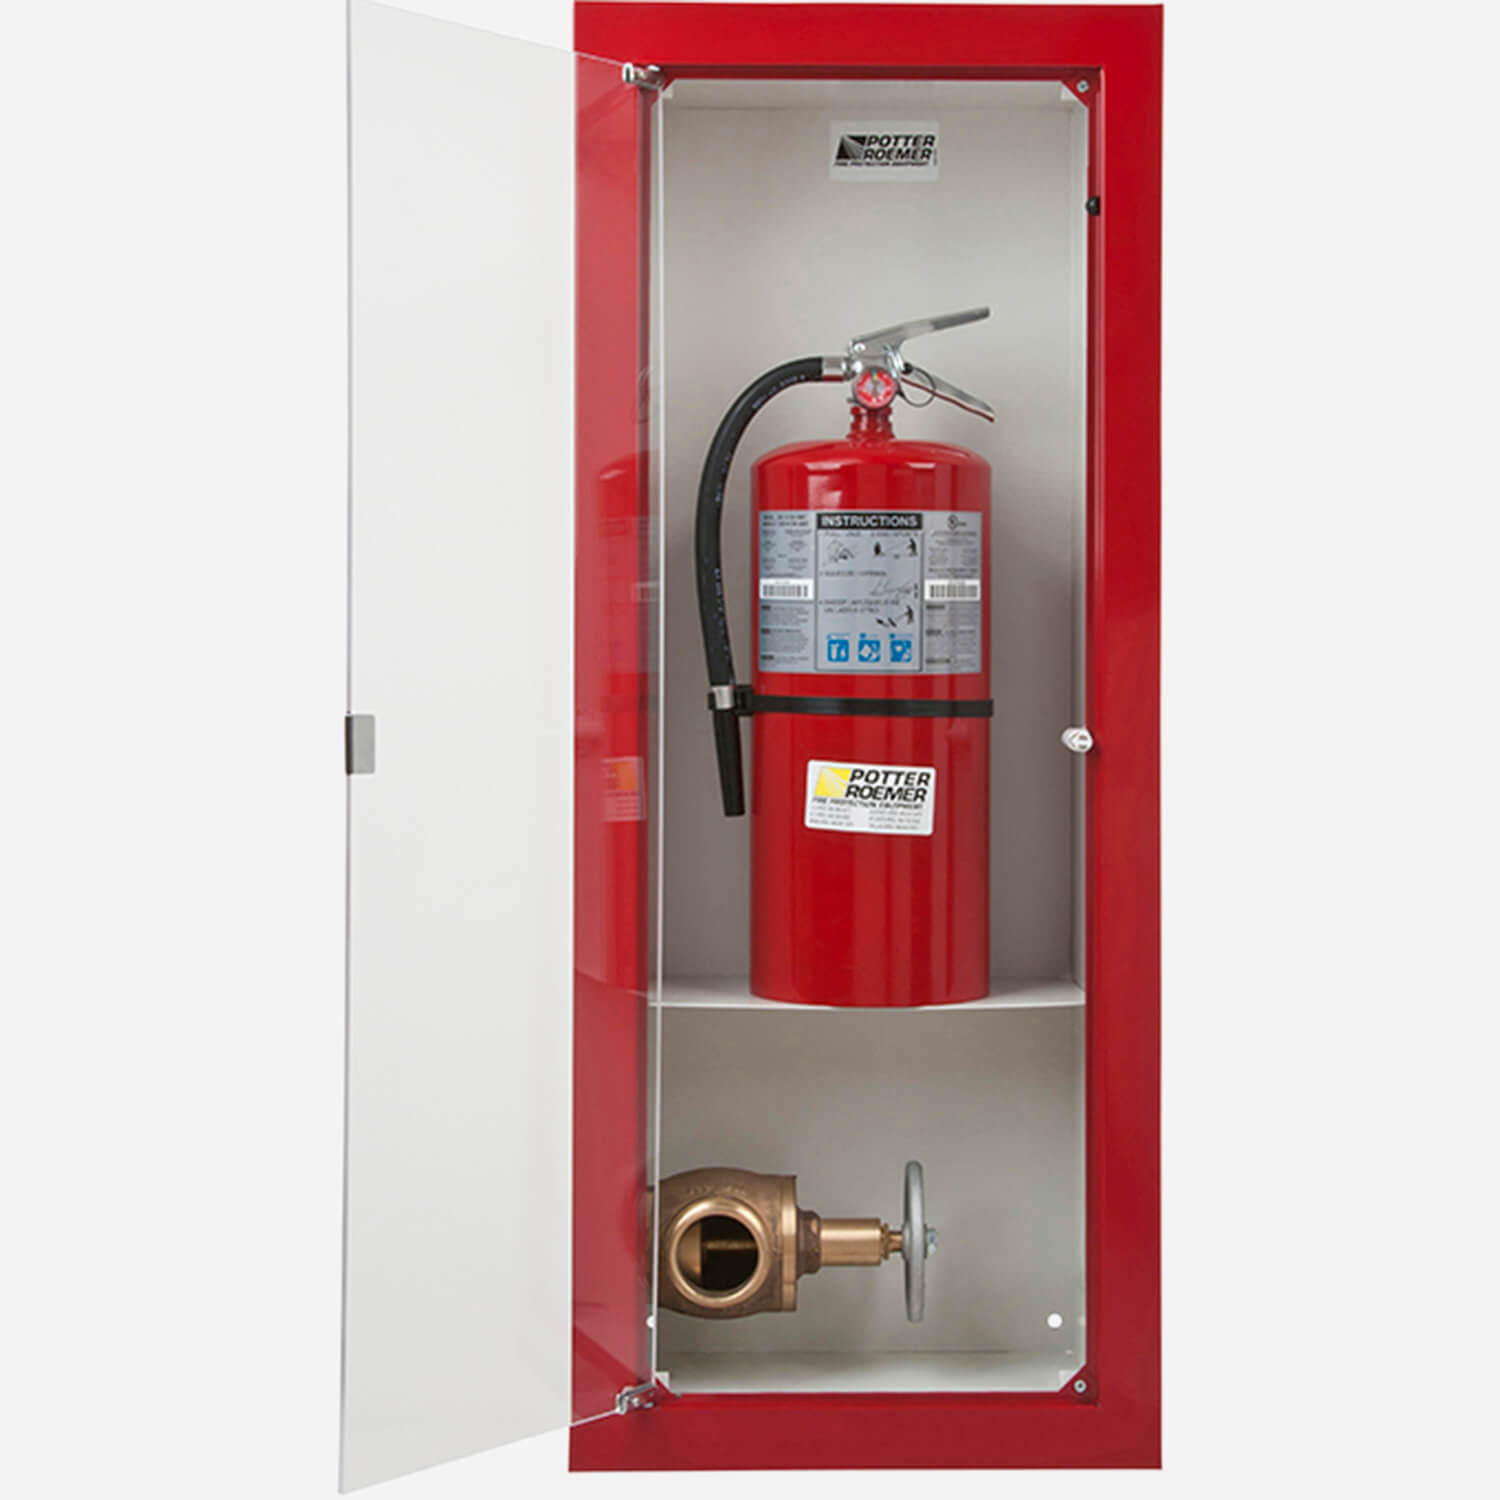 Semi-Recessed Buena Valve & Fire Extinguisher Cabinet - Potter Roemer